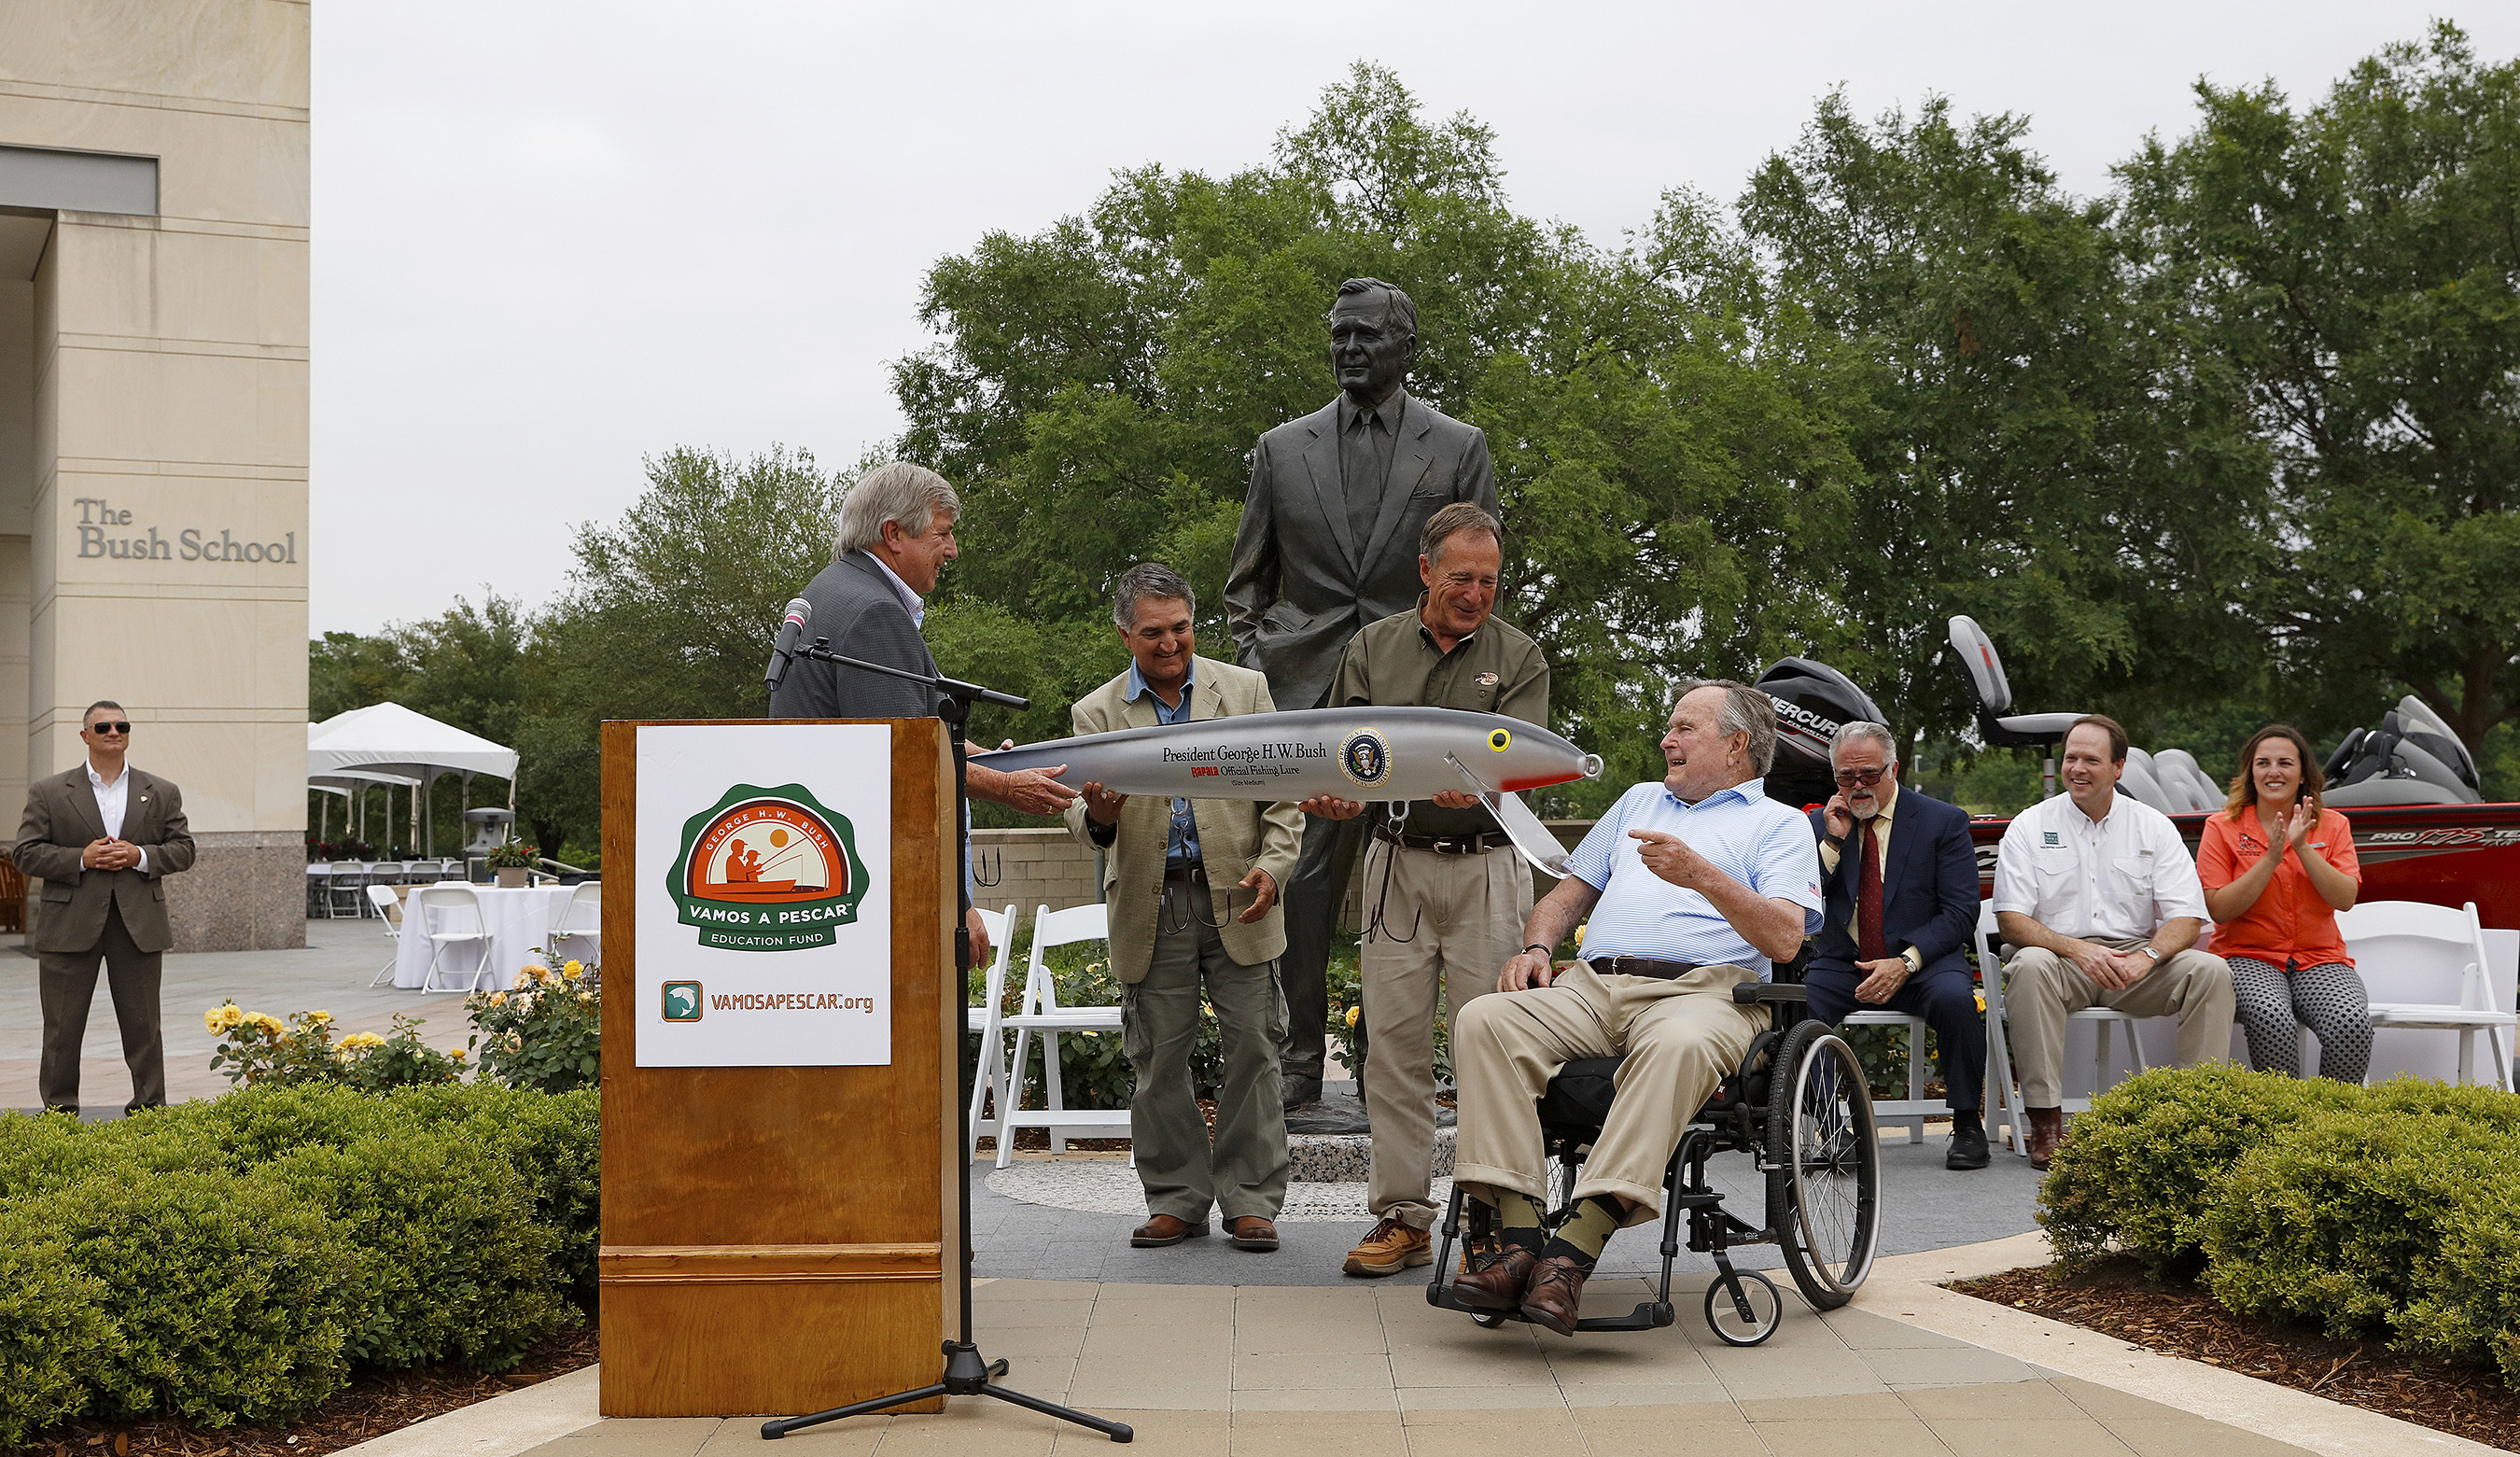 President George H.W. Bush is presented with a commemorative lure during a Recreational Boating & Fishing Foundation (RBFF) event at the George Bush Presidential Library on Thursday, April 14, 2016, in College Station, Texas. RBFF is a nonprofit organization whose mission is to increase participation in recreational angling and boating, thereby protecting and restoring the nation's aquatic natural resources. (Aaron M. Sprecher/AP Images for RBFF)